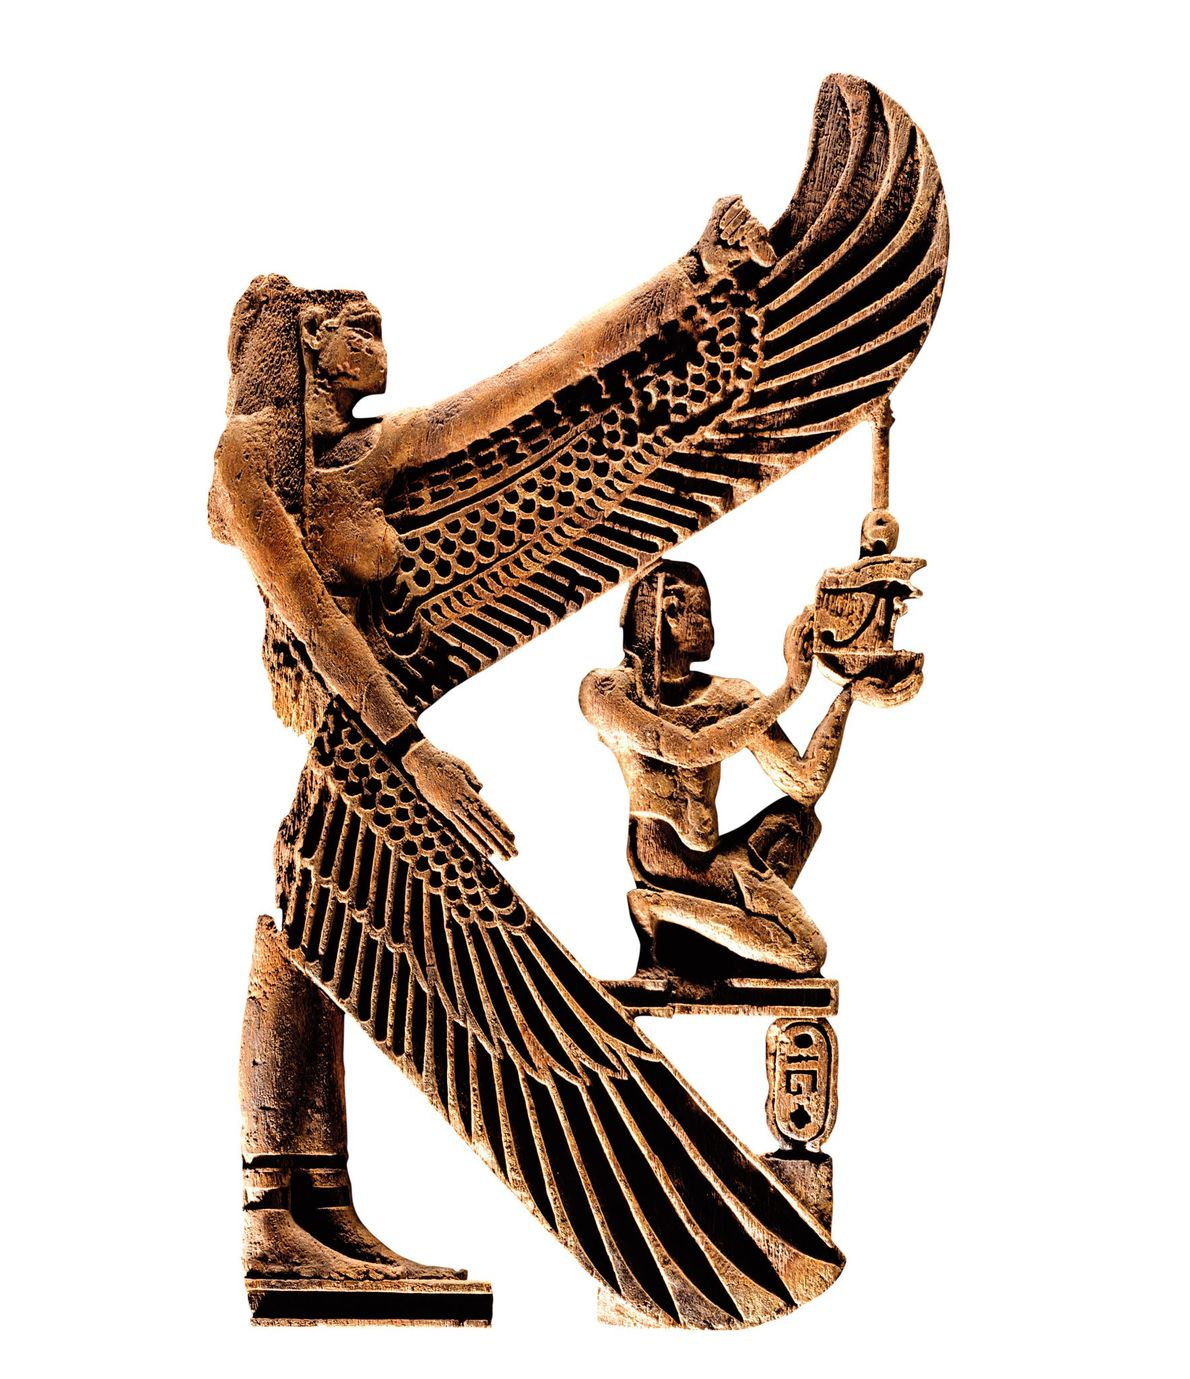 Worship of this Egyptian goddess spread from Egypt to England